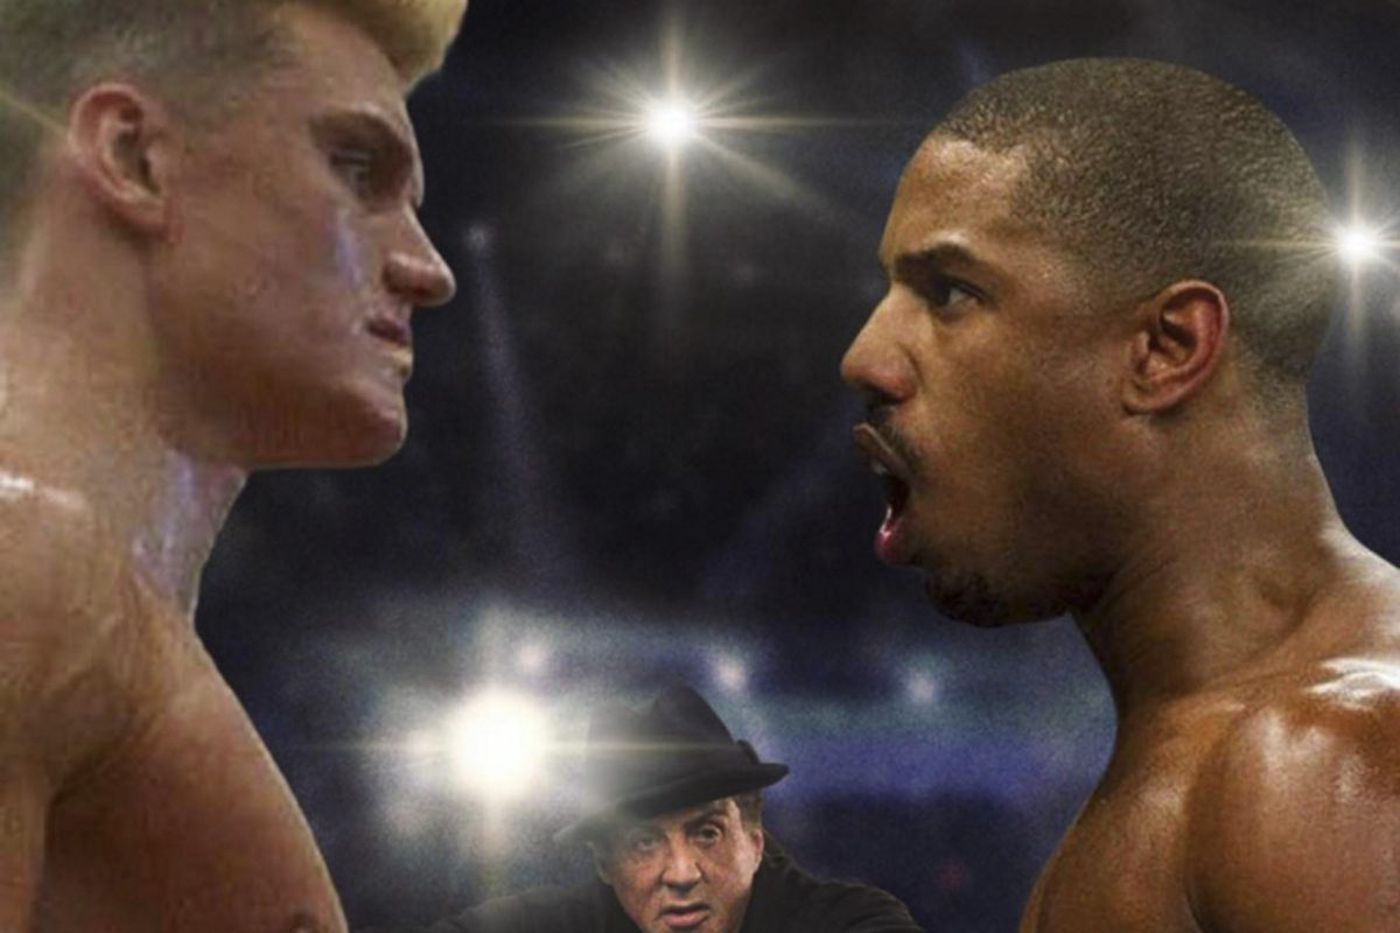 Sylvester Stallone hints at Ivan Drago/Adonis Creed fight in potential 'Creed' sequel